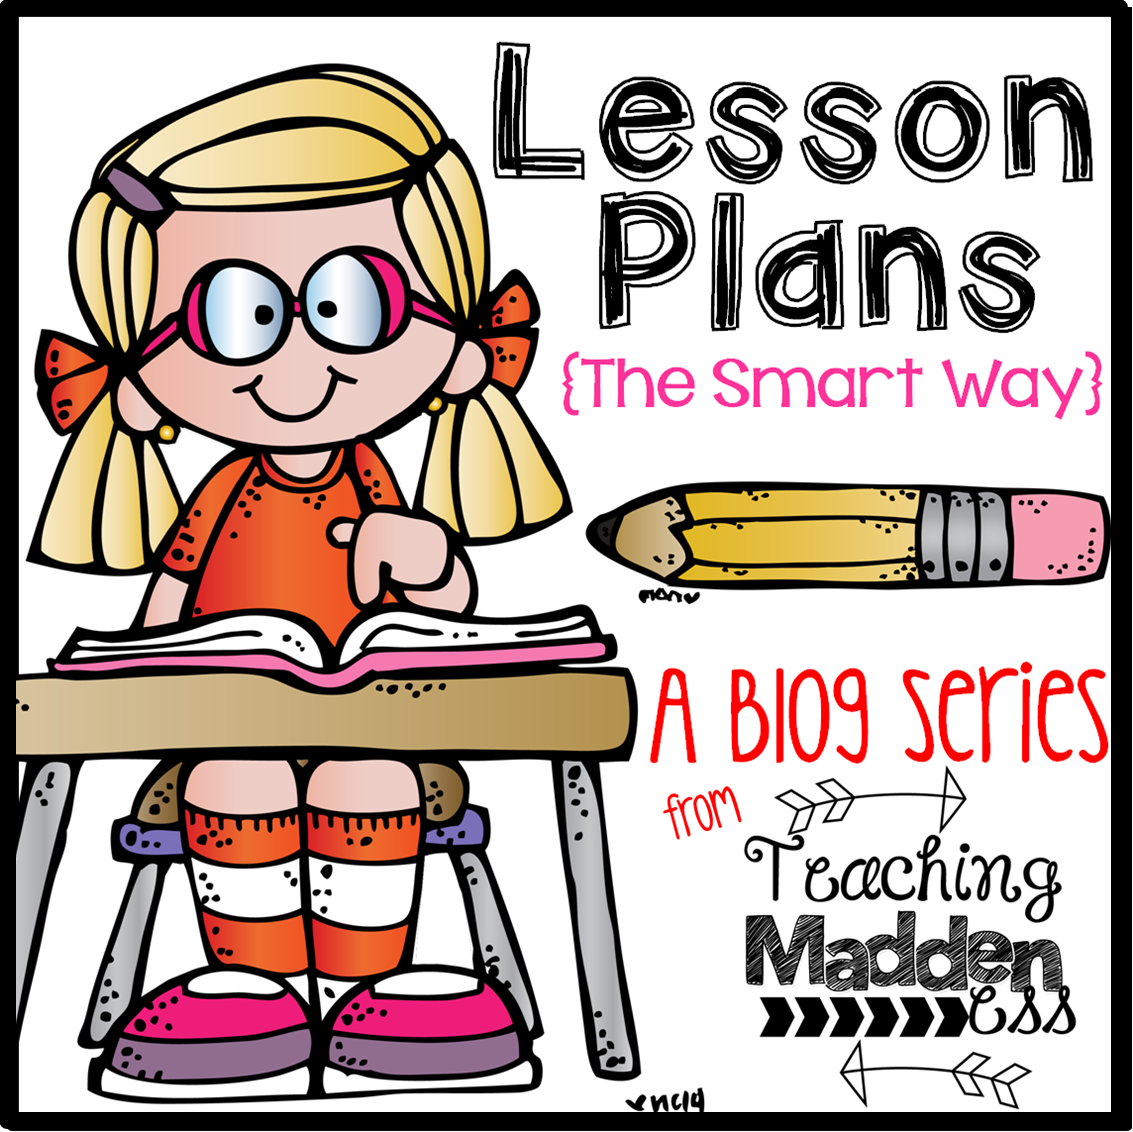 The Teacher's Guide-Free Worksheets, SMARTboard templates, and lesson plans for teachers.